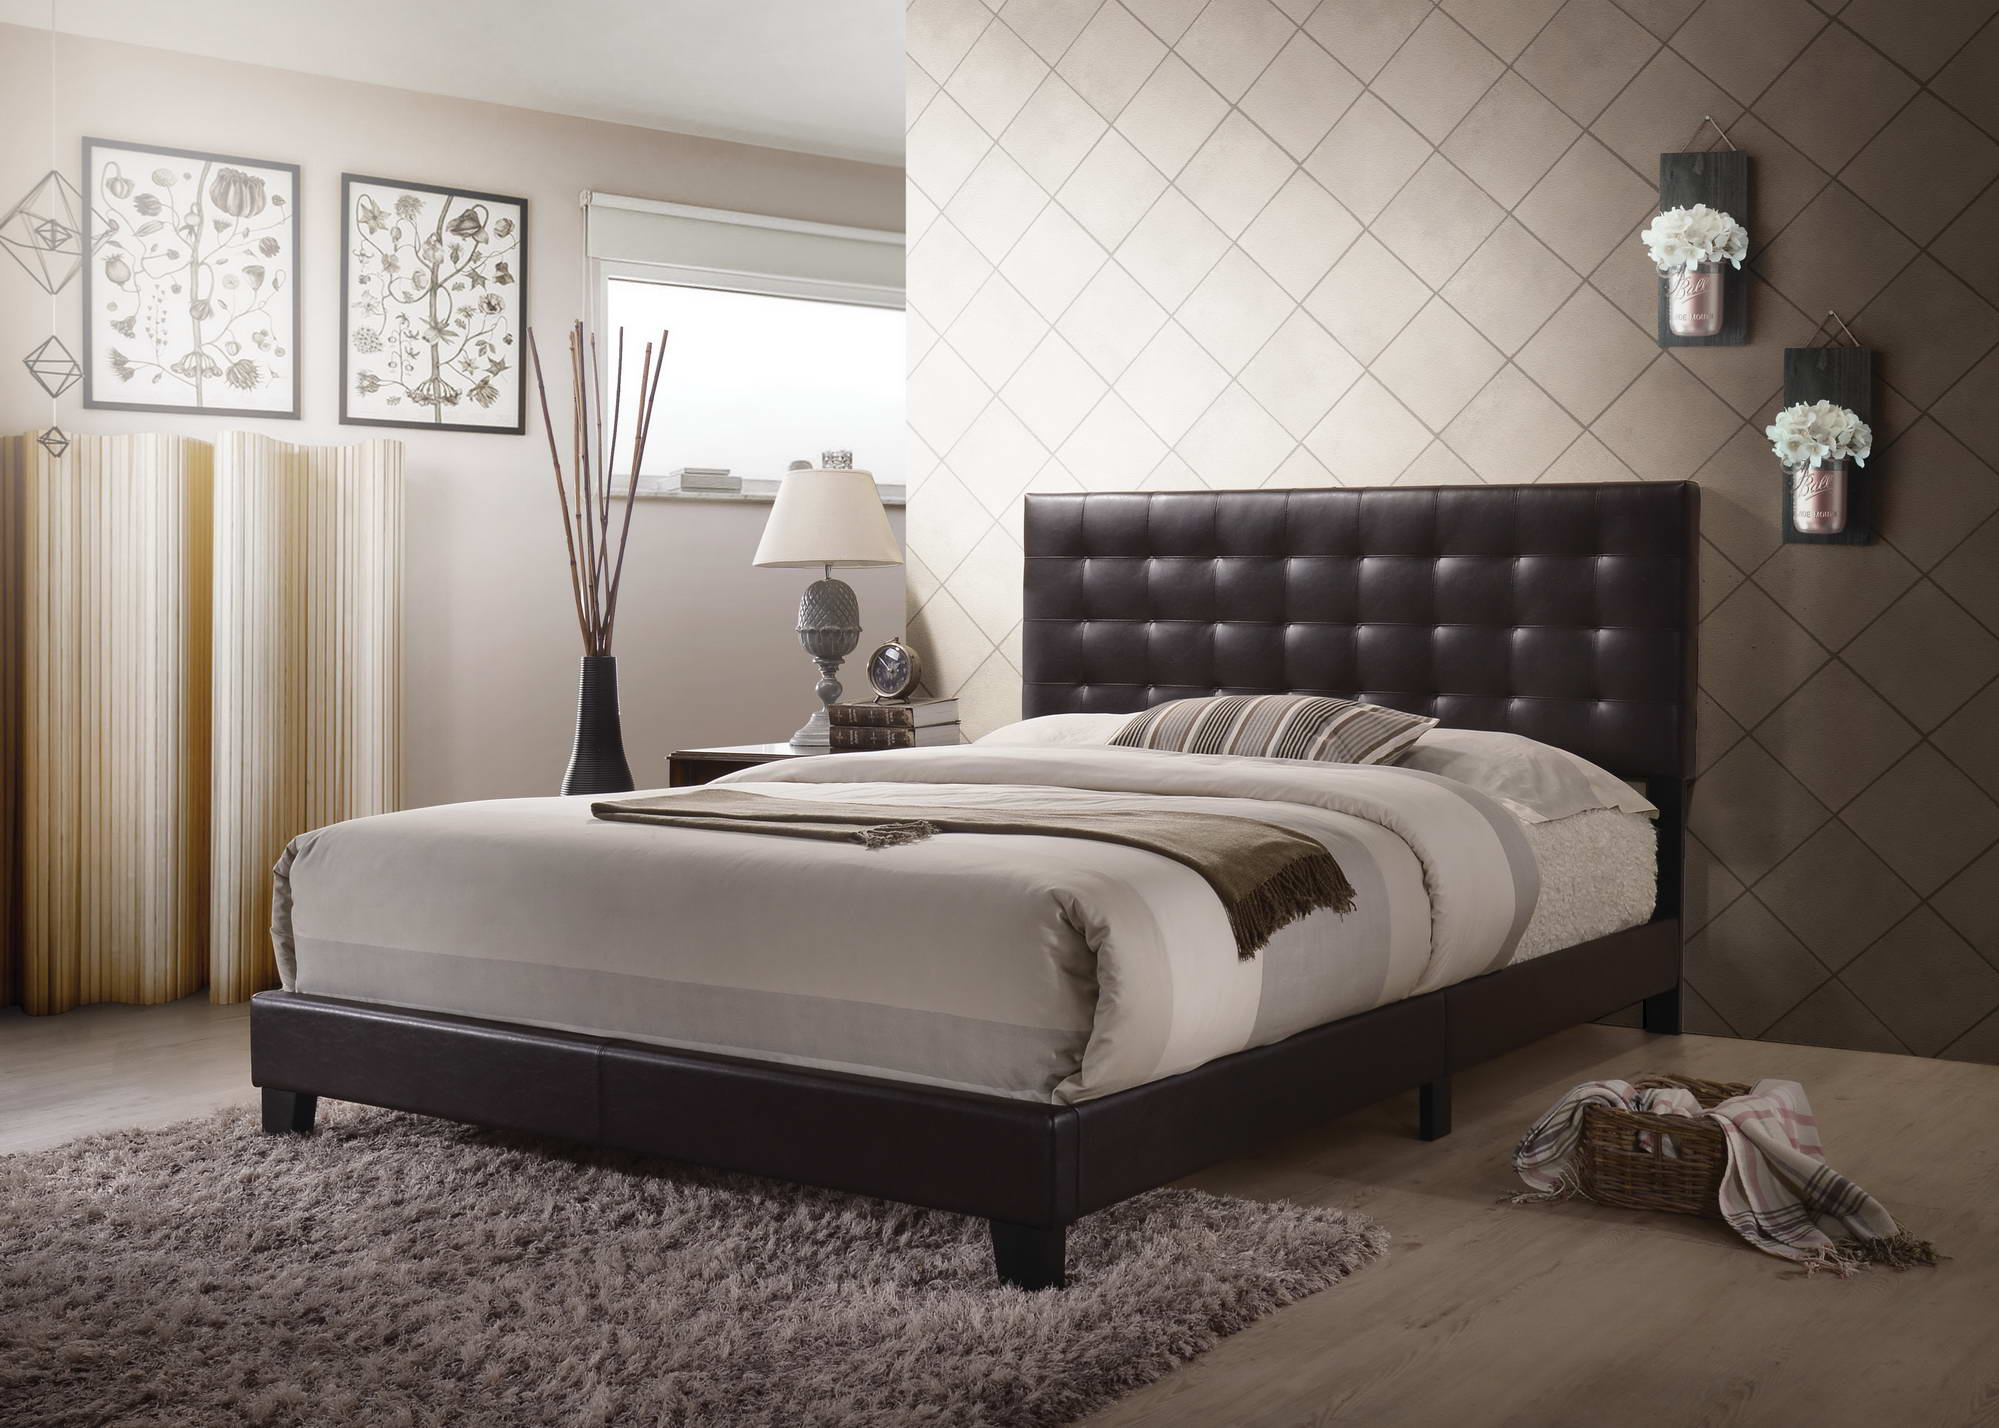 Queen Platform Bed In Espresso, Tufted Headboard